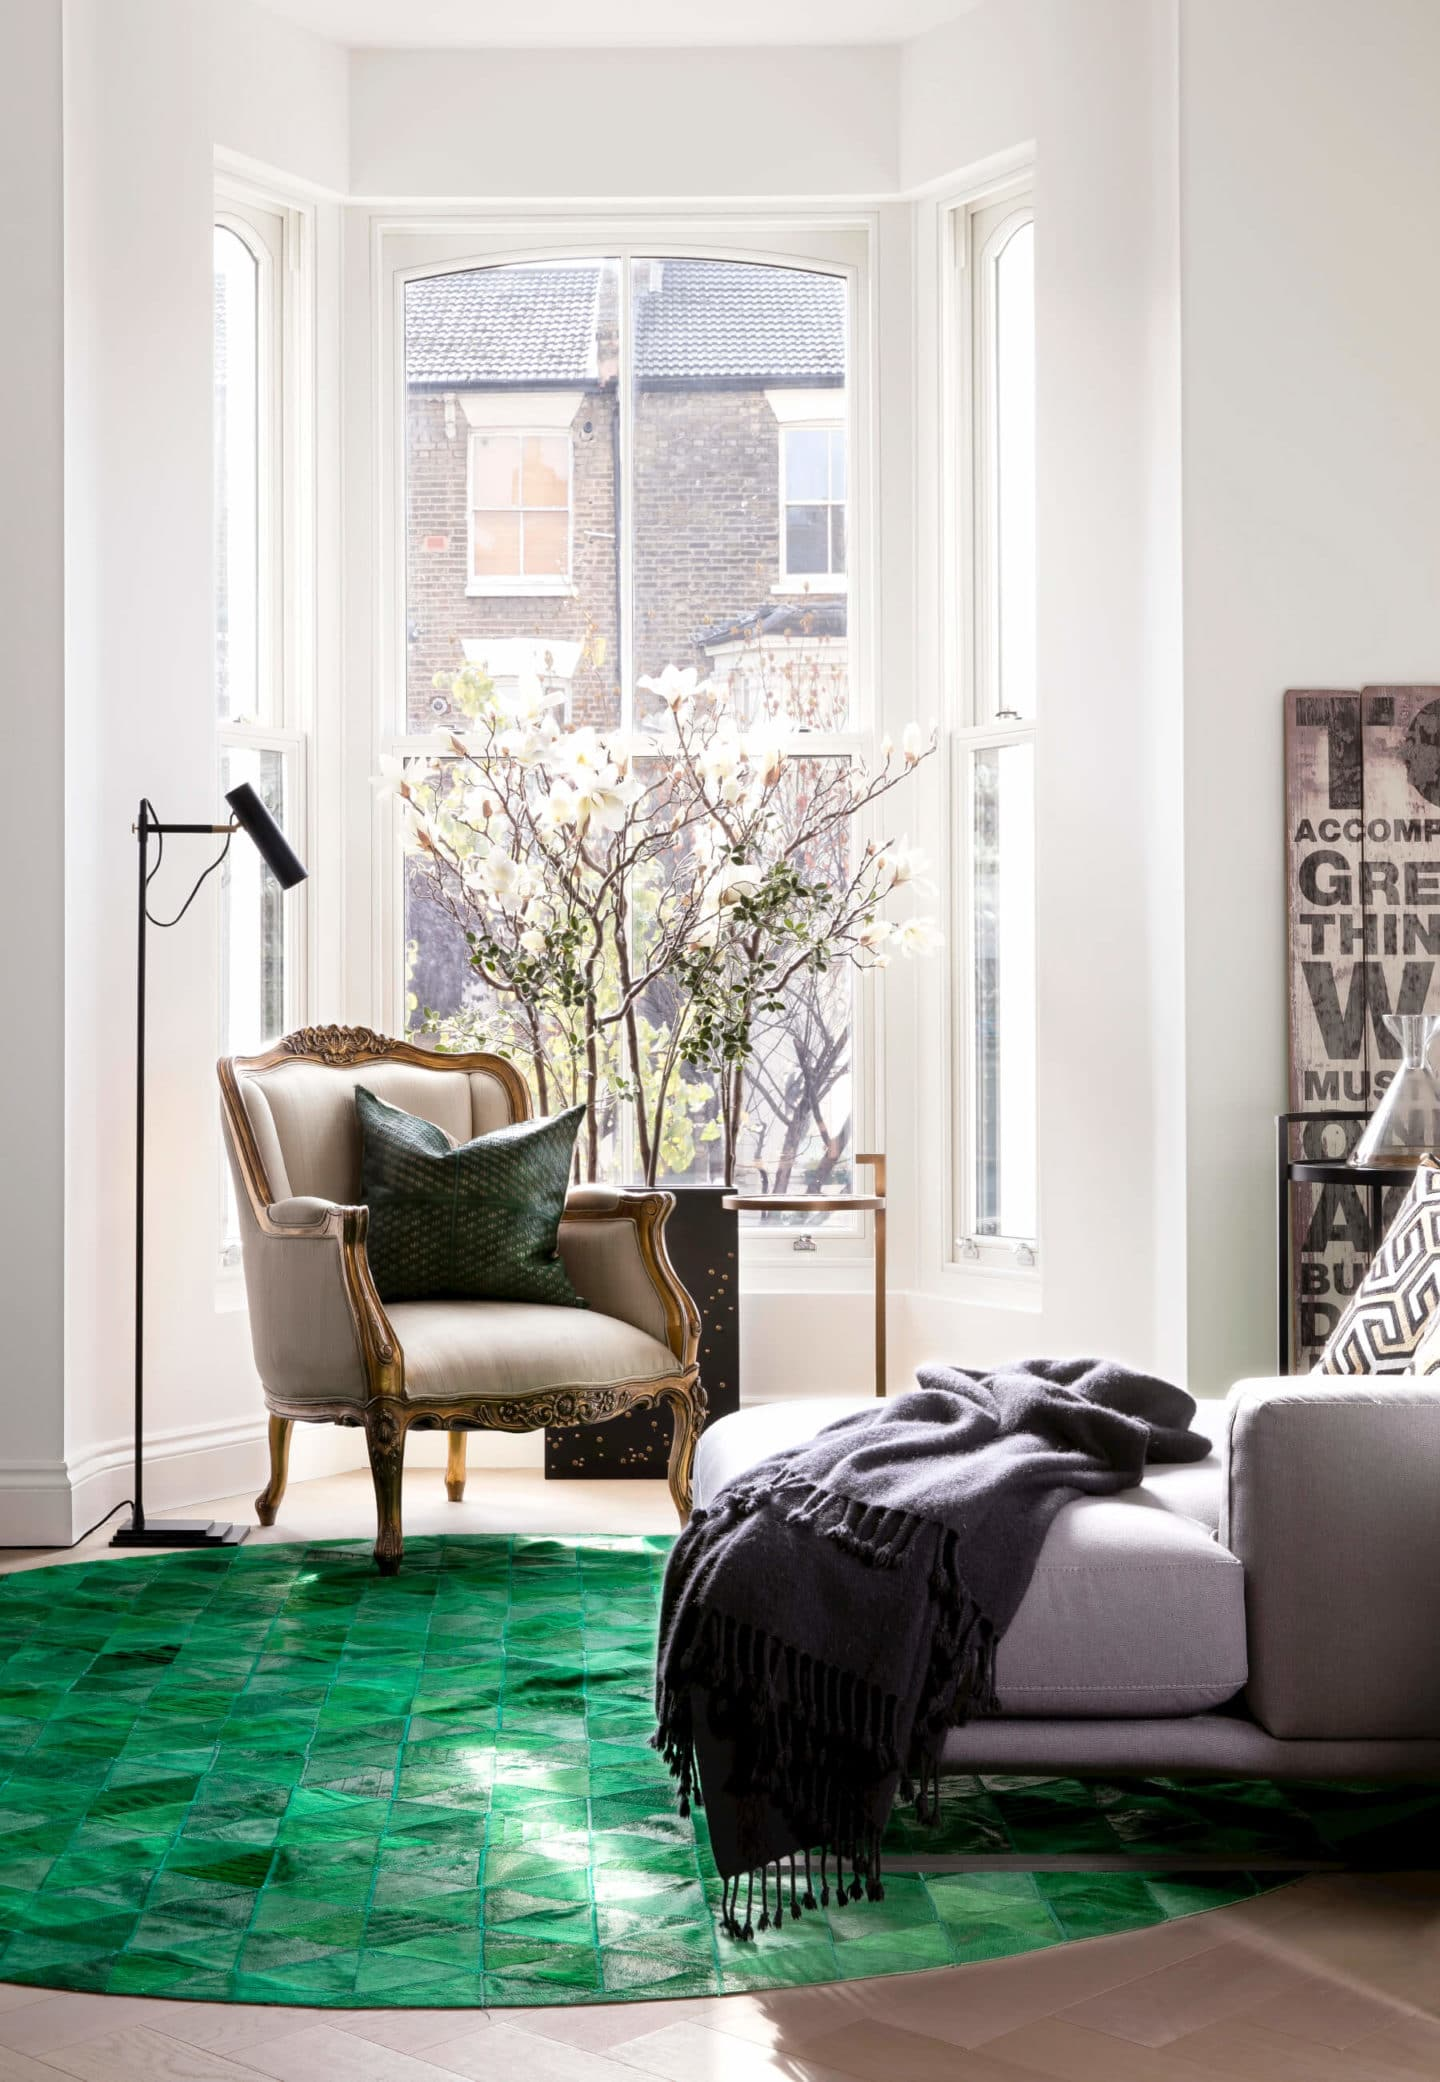 Interior Design by Casa Botelho seen at London Fields Home, London - Interior Design